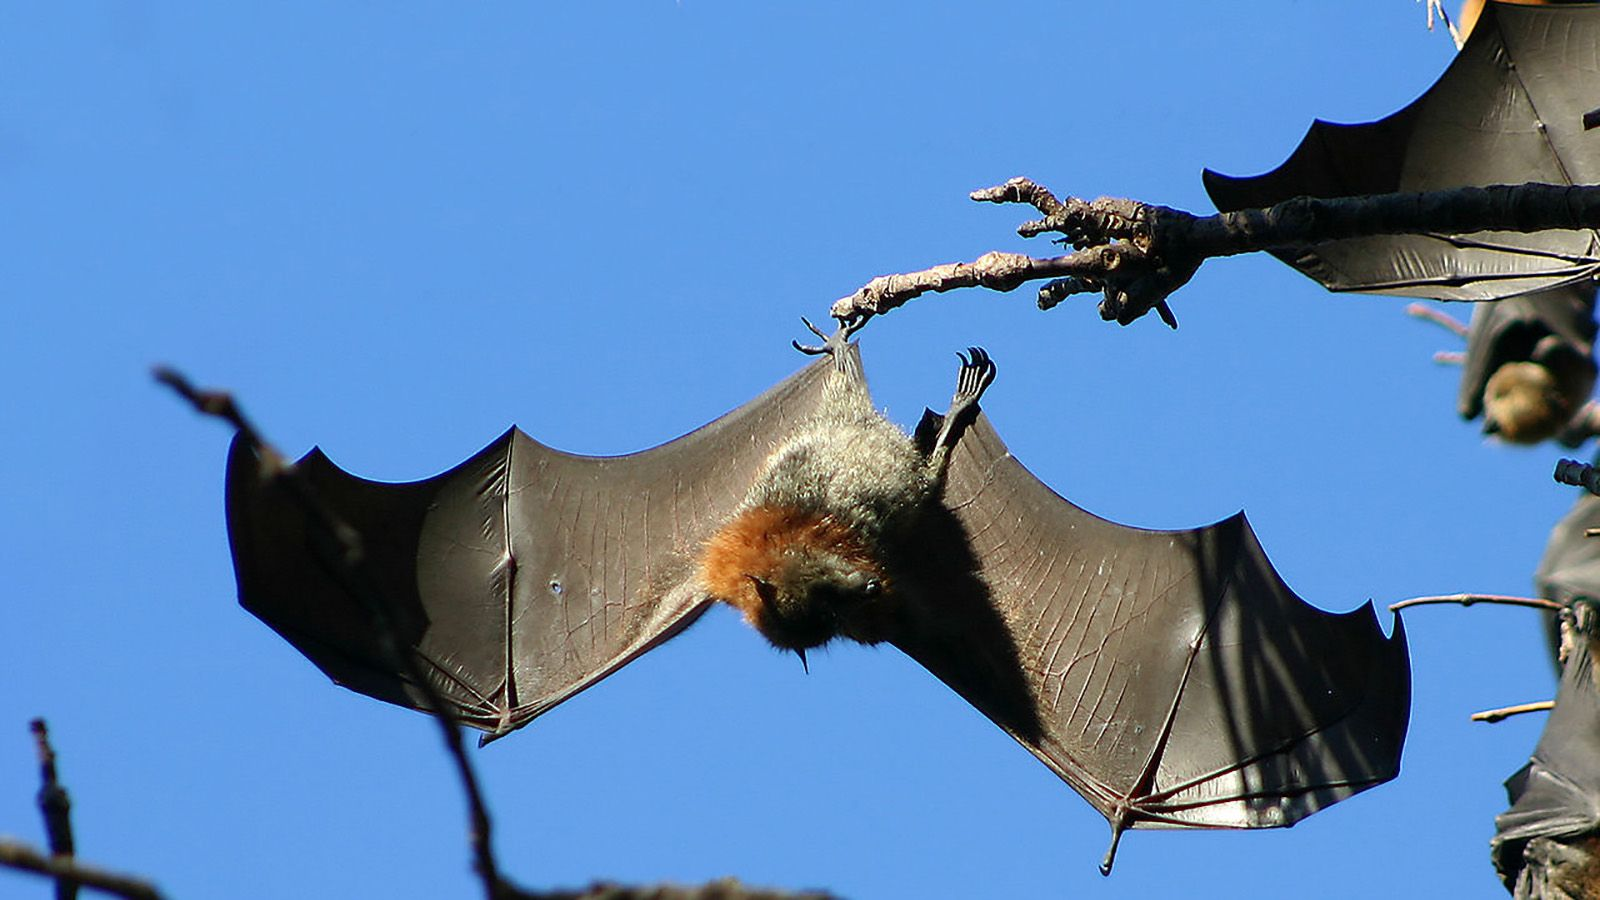 Flying fox with wings outstretched, hanging upside down from a tree banner image